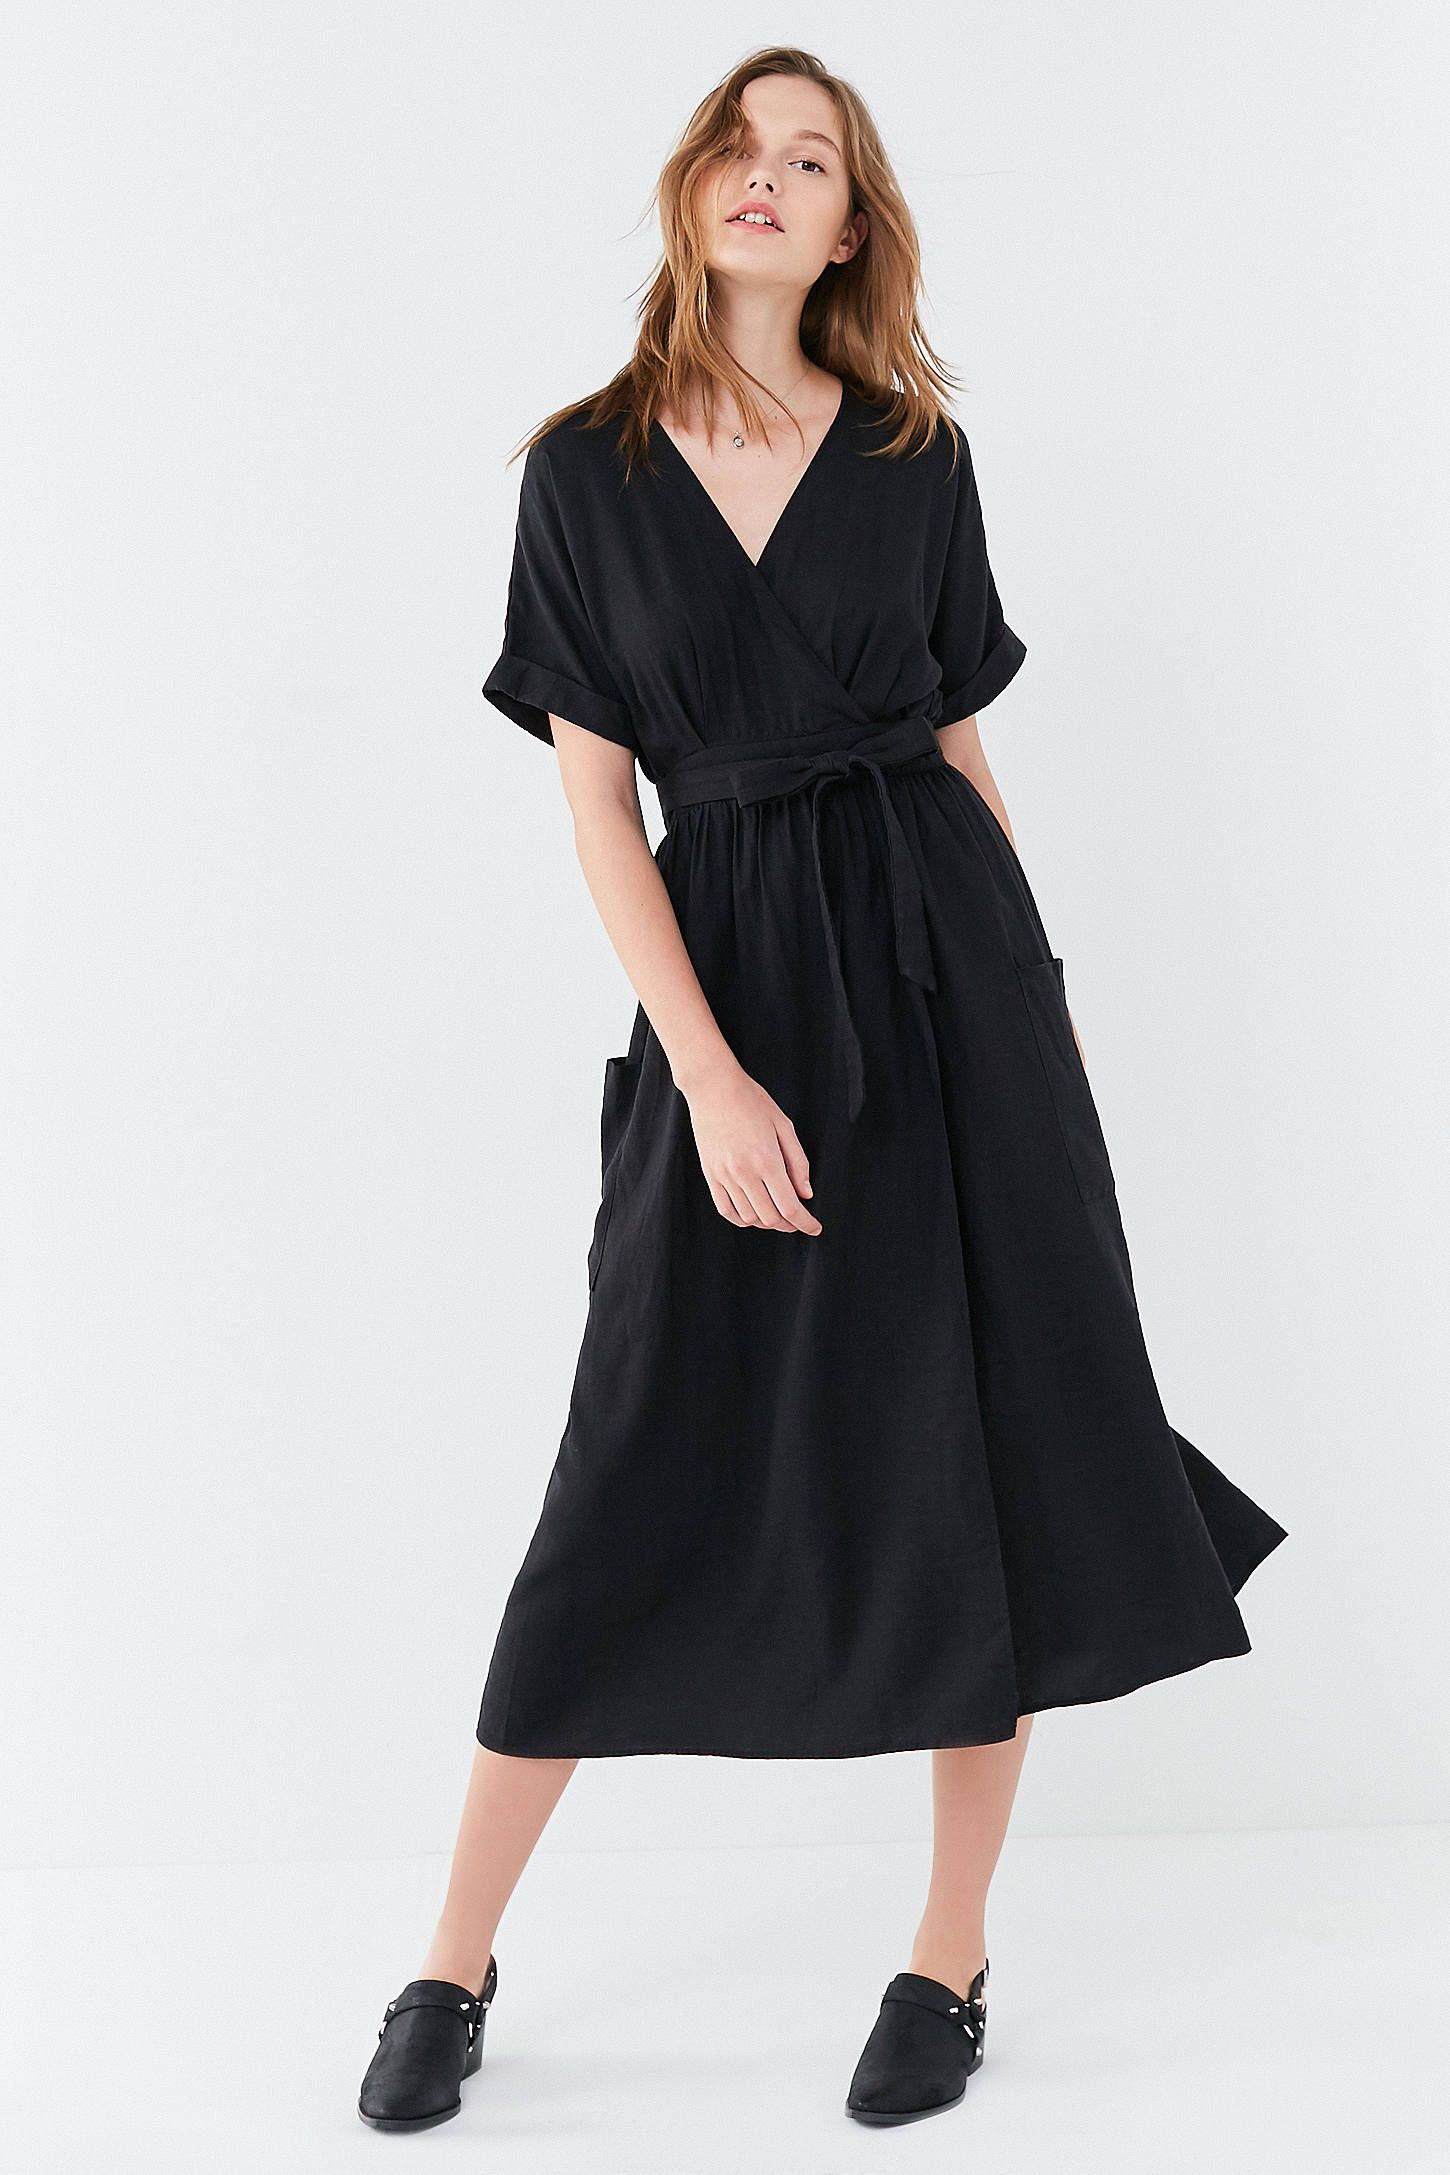 7e77347e81 Shop UO Gabrielle Linen Midi Wrap Dress at Urban Outfitters today. We carry  all the latest styles